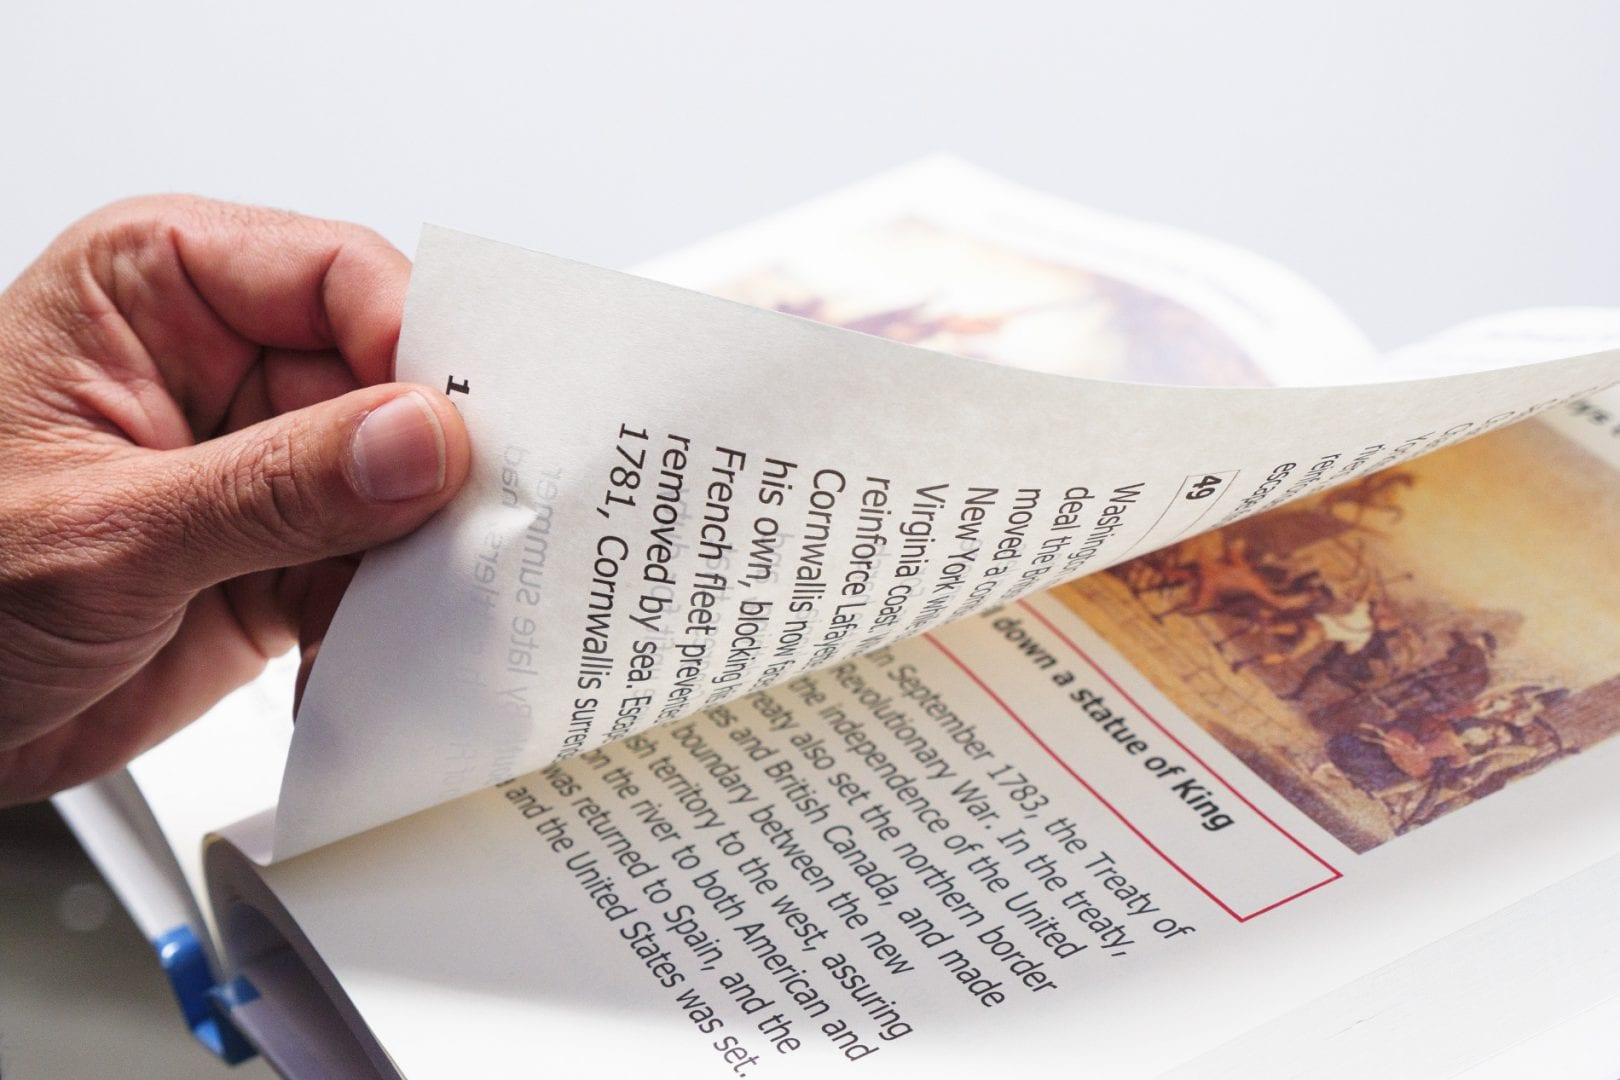 A hand turning a page of a book